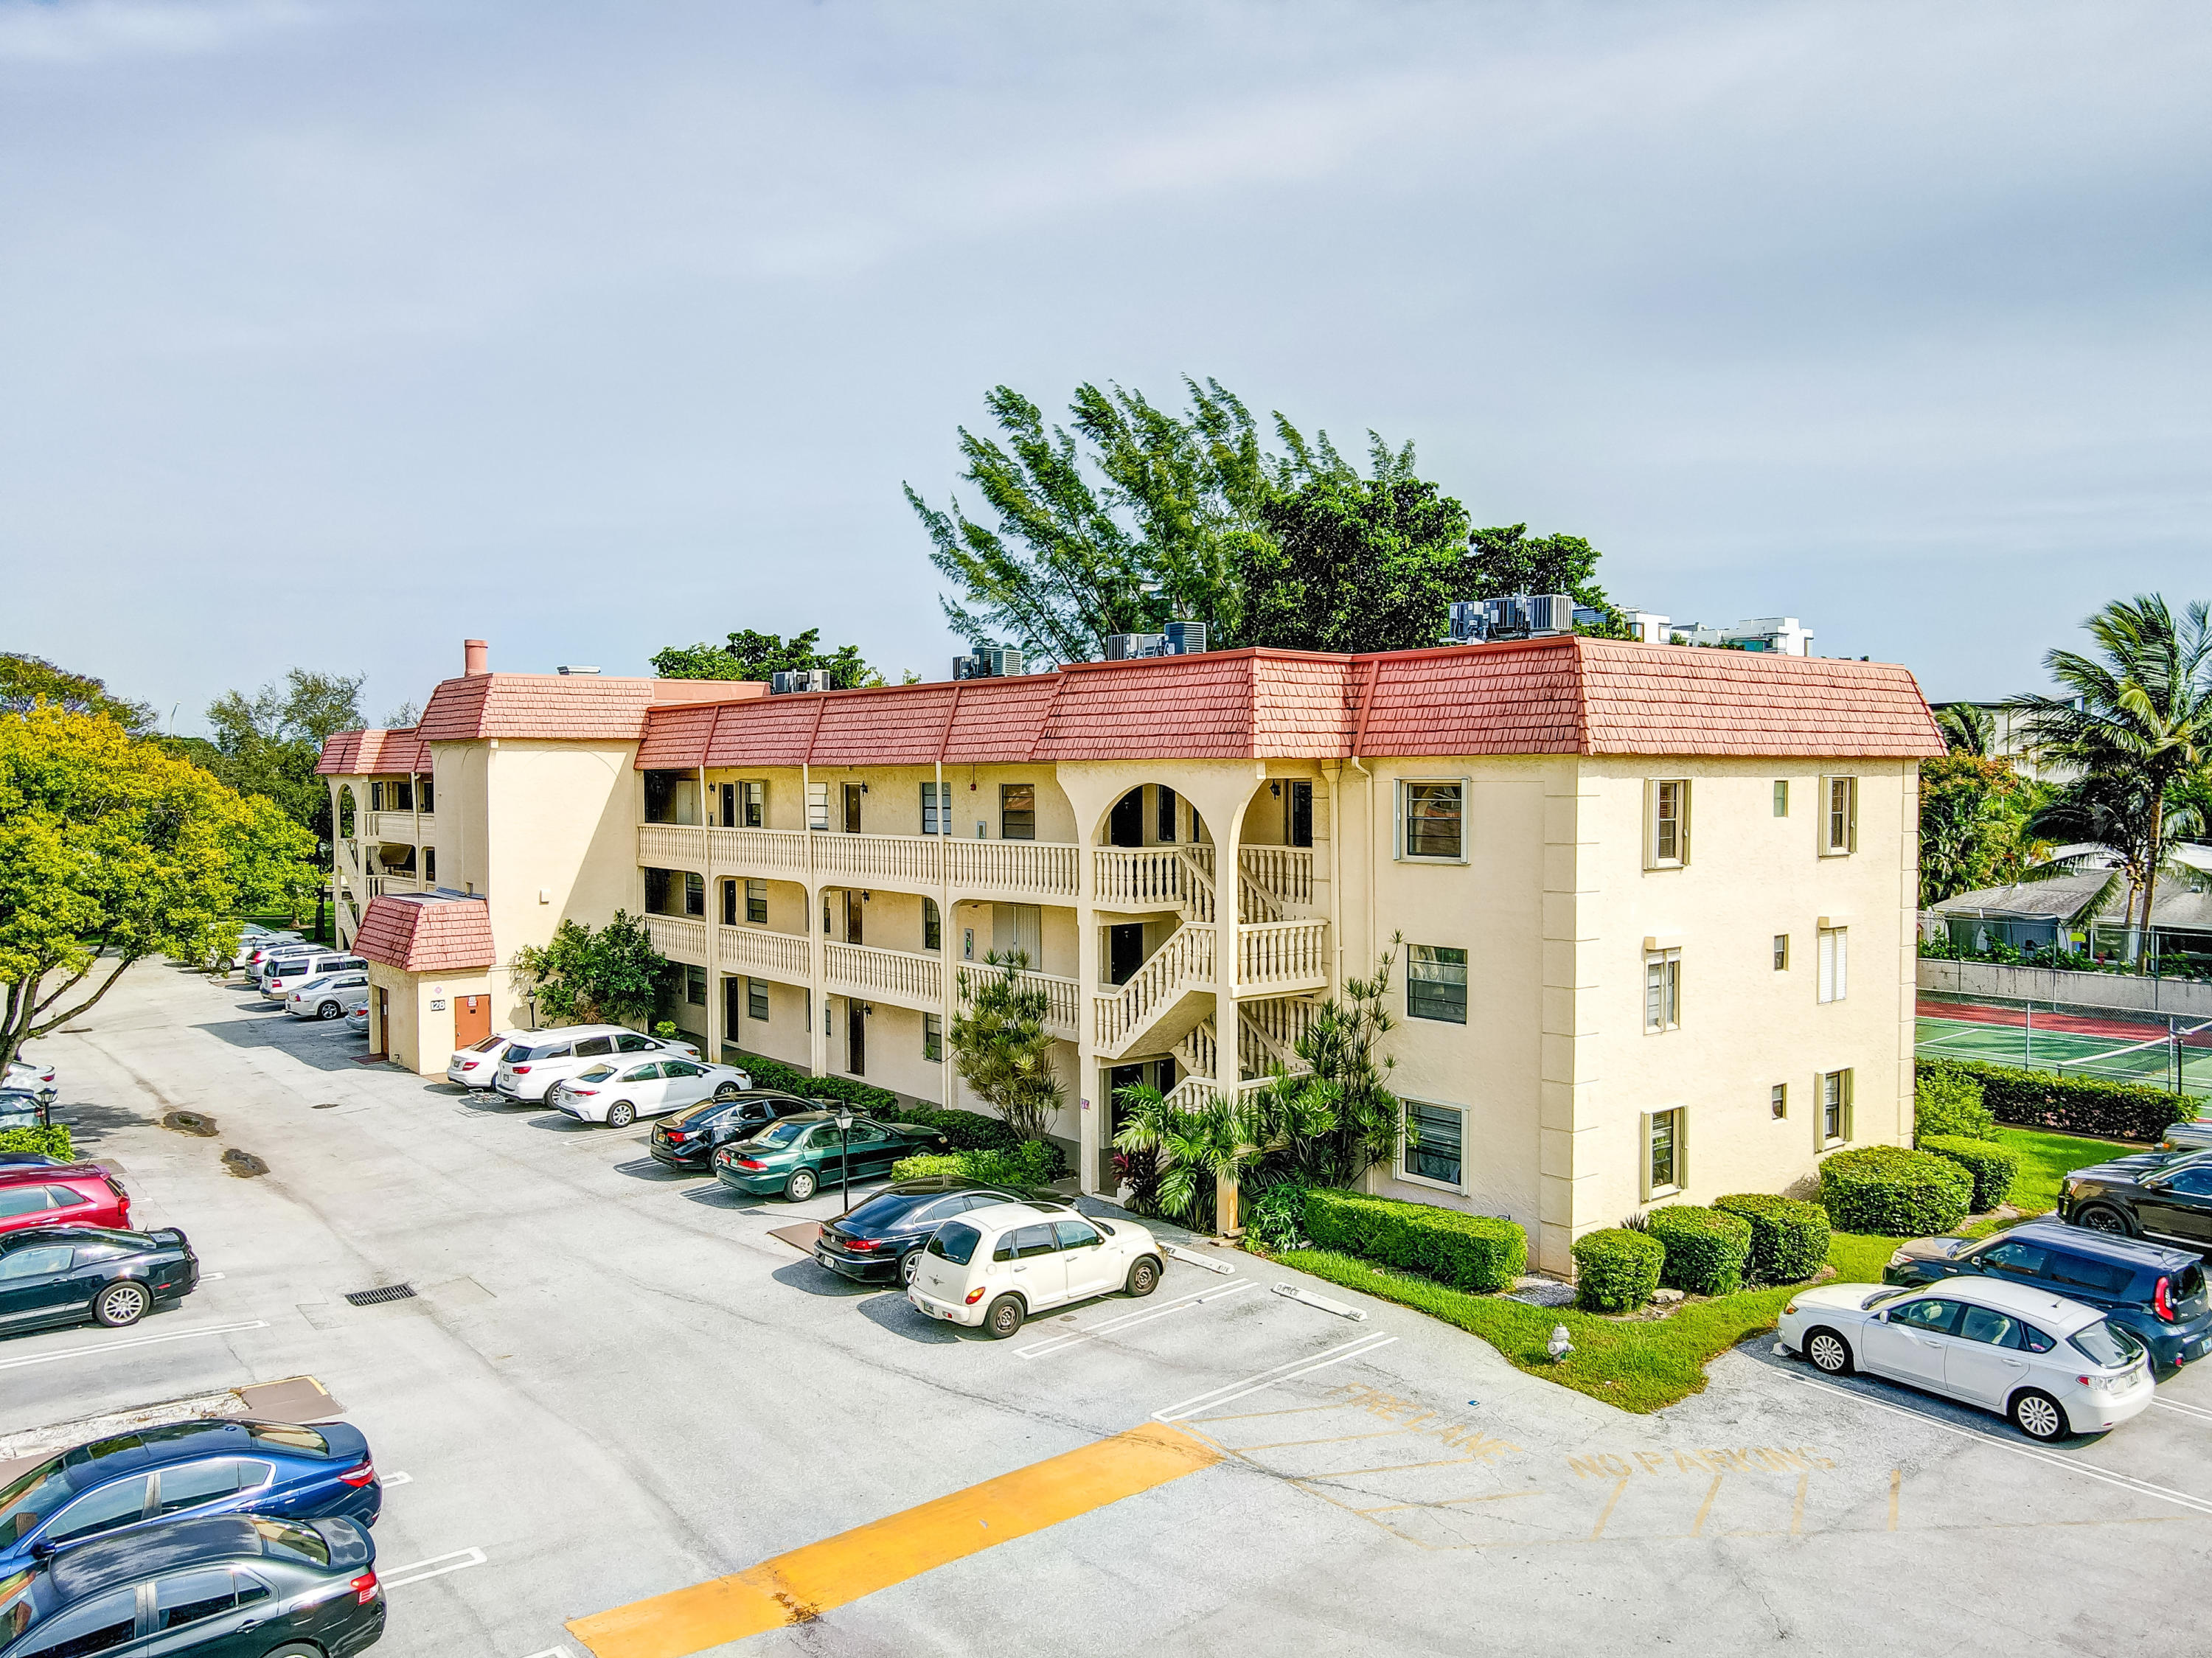 128 S Cypress Unit 838, Pompano Beach, Florida 33060